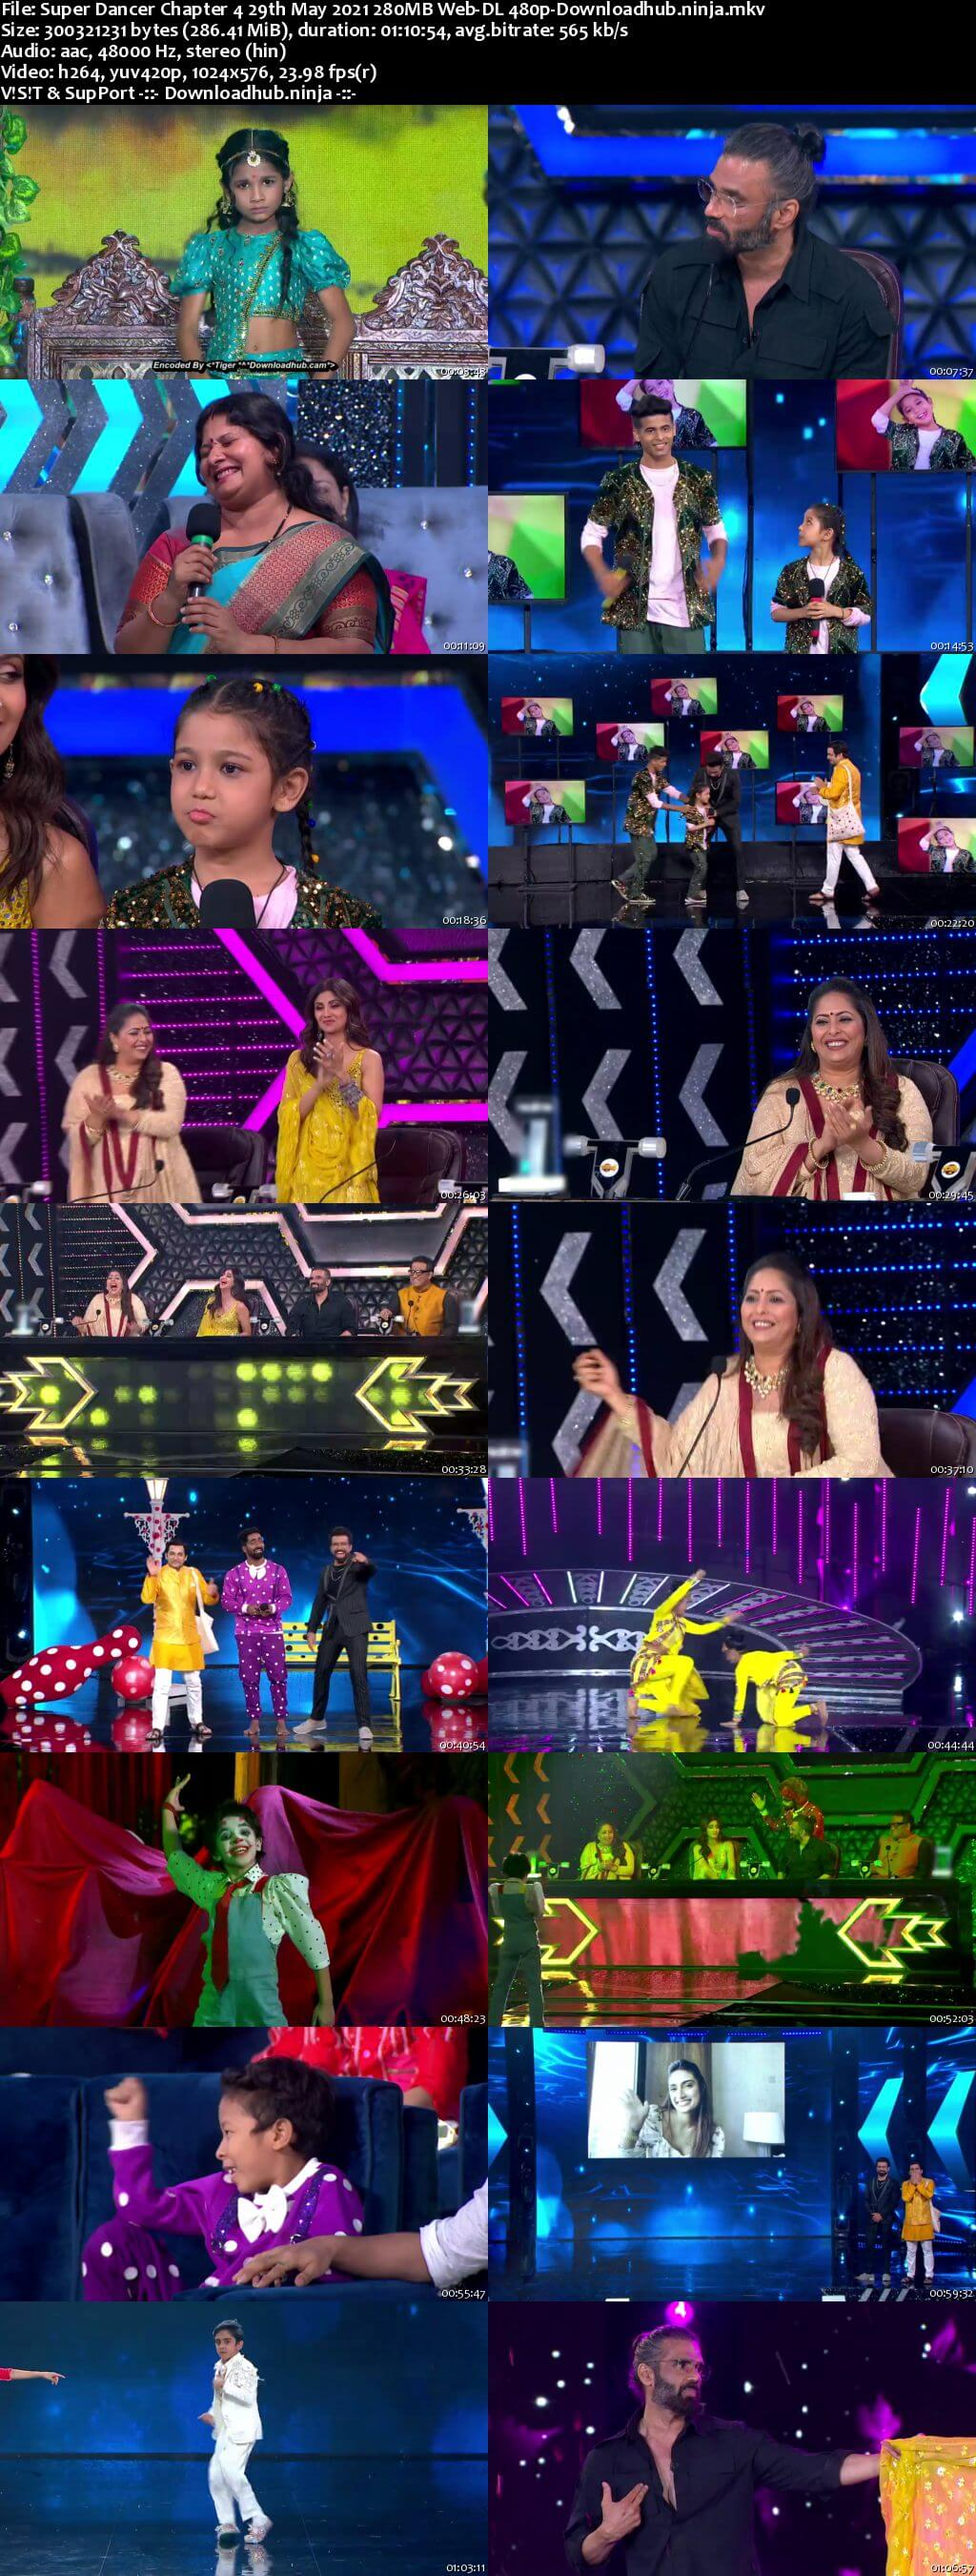 Super Dancer Chapter 4 29th May 2021 280MB Web-DL 480p